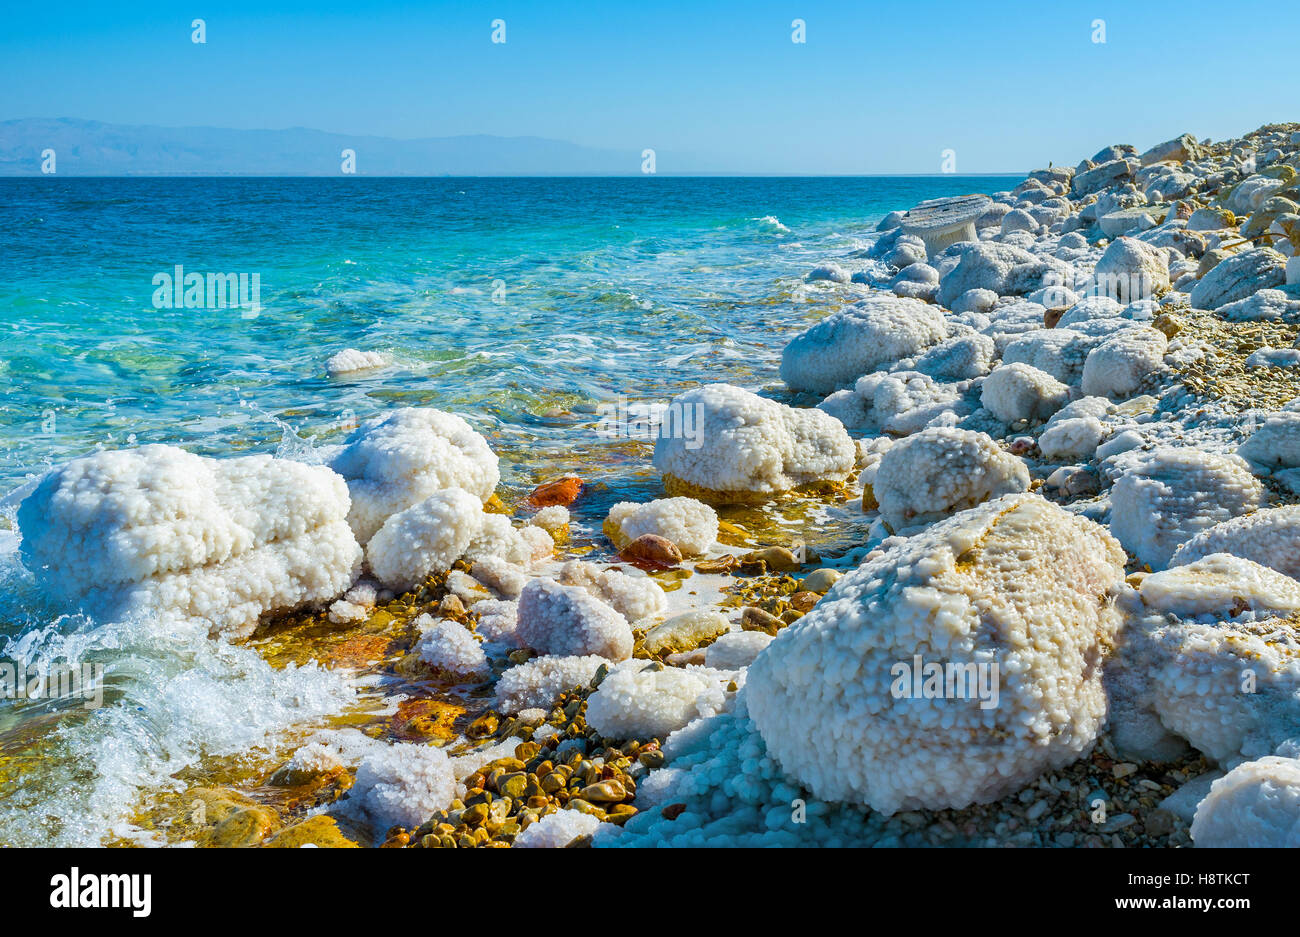 The Dead Sea is the famous tourist resort, and one of the most popular locations in Israel. - Stock Image